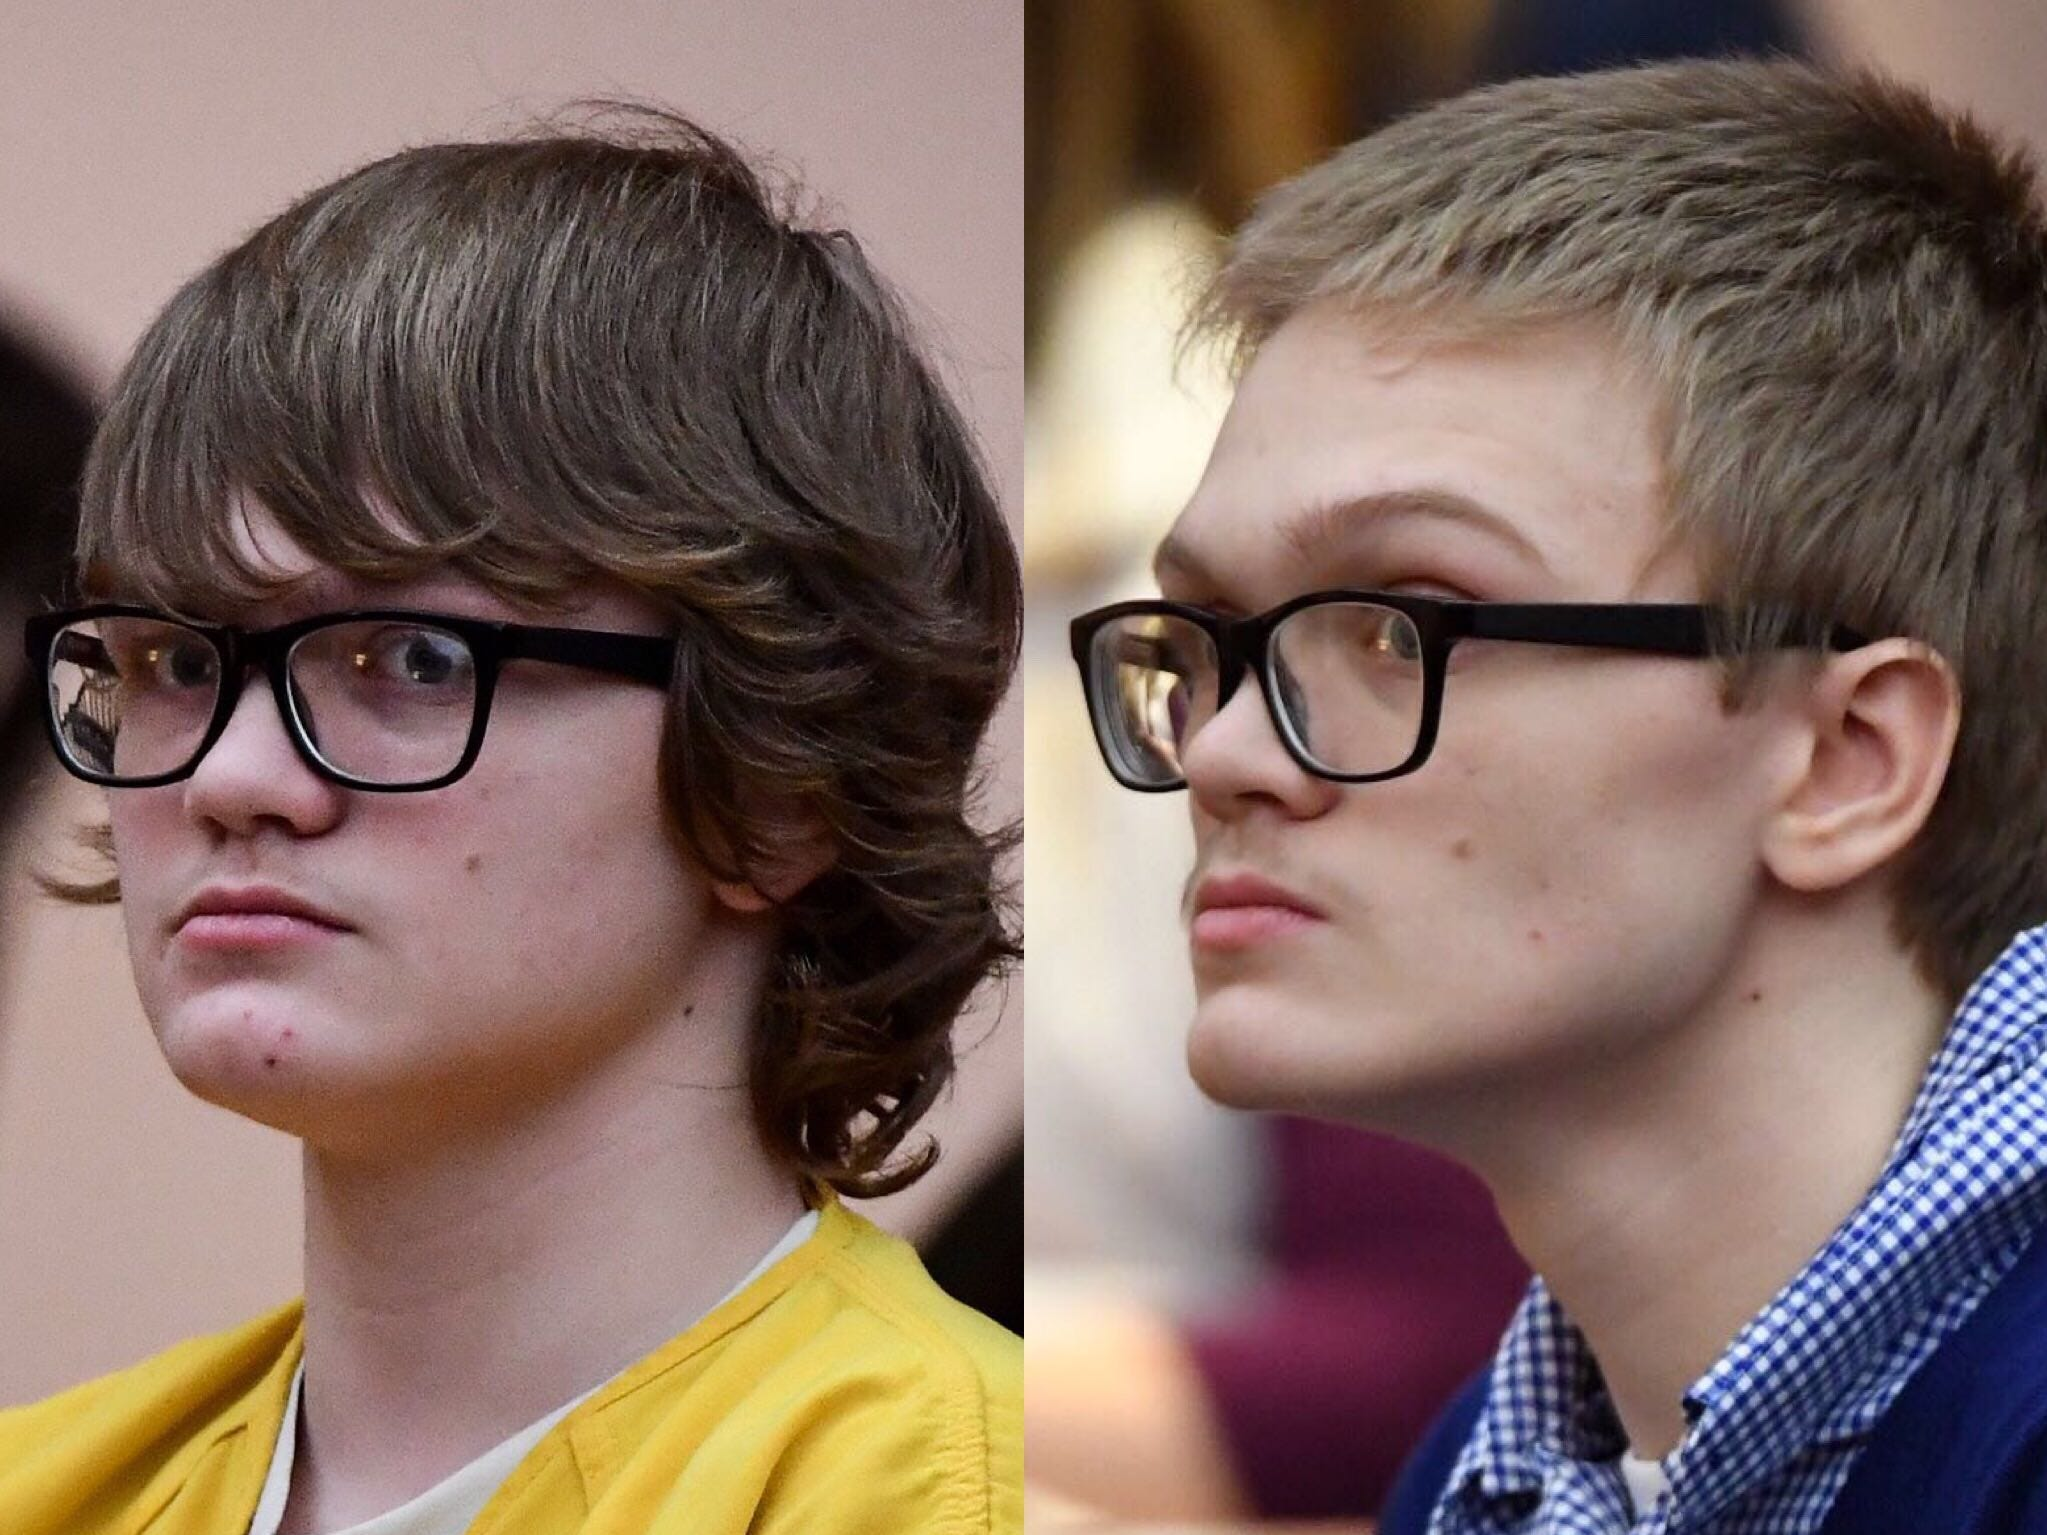 Side-by-side: (Left) Judge Edgar Long ruled to waive up Jesse Osborne at the Anderson County Courthouse on Friday, February 16, 2018. (Right) Jesse Osborne pleads guilty to the Townville Elementary School shooting during his court hearing on Wednesday, Dec. 12, 2018.